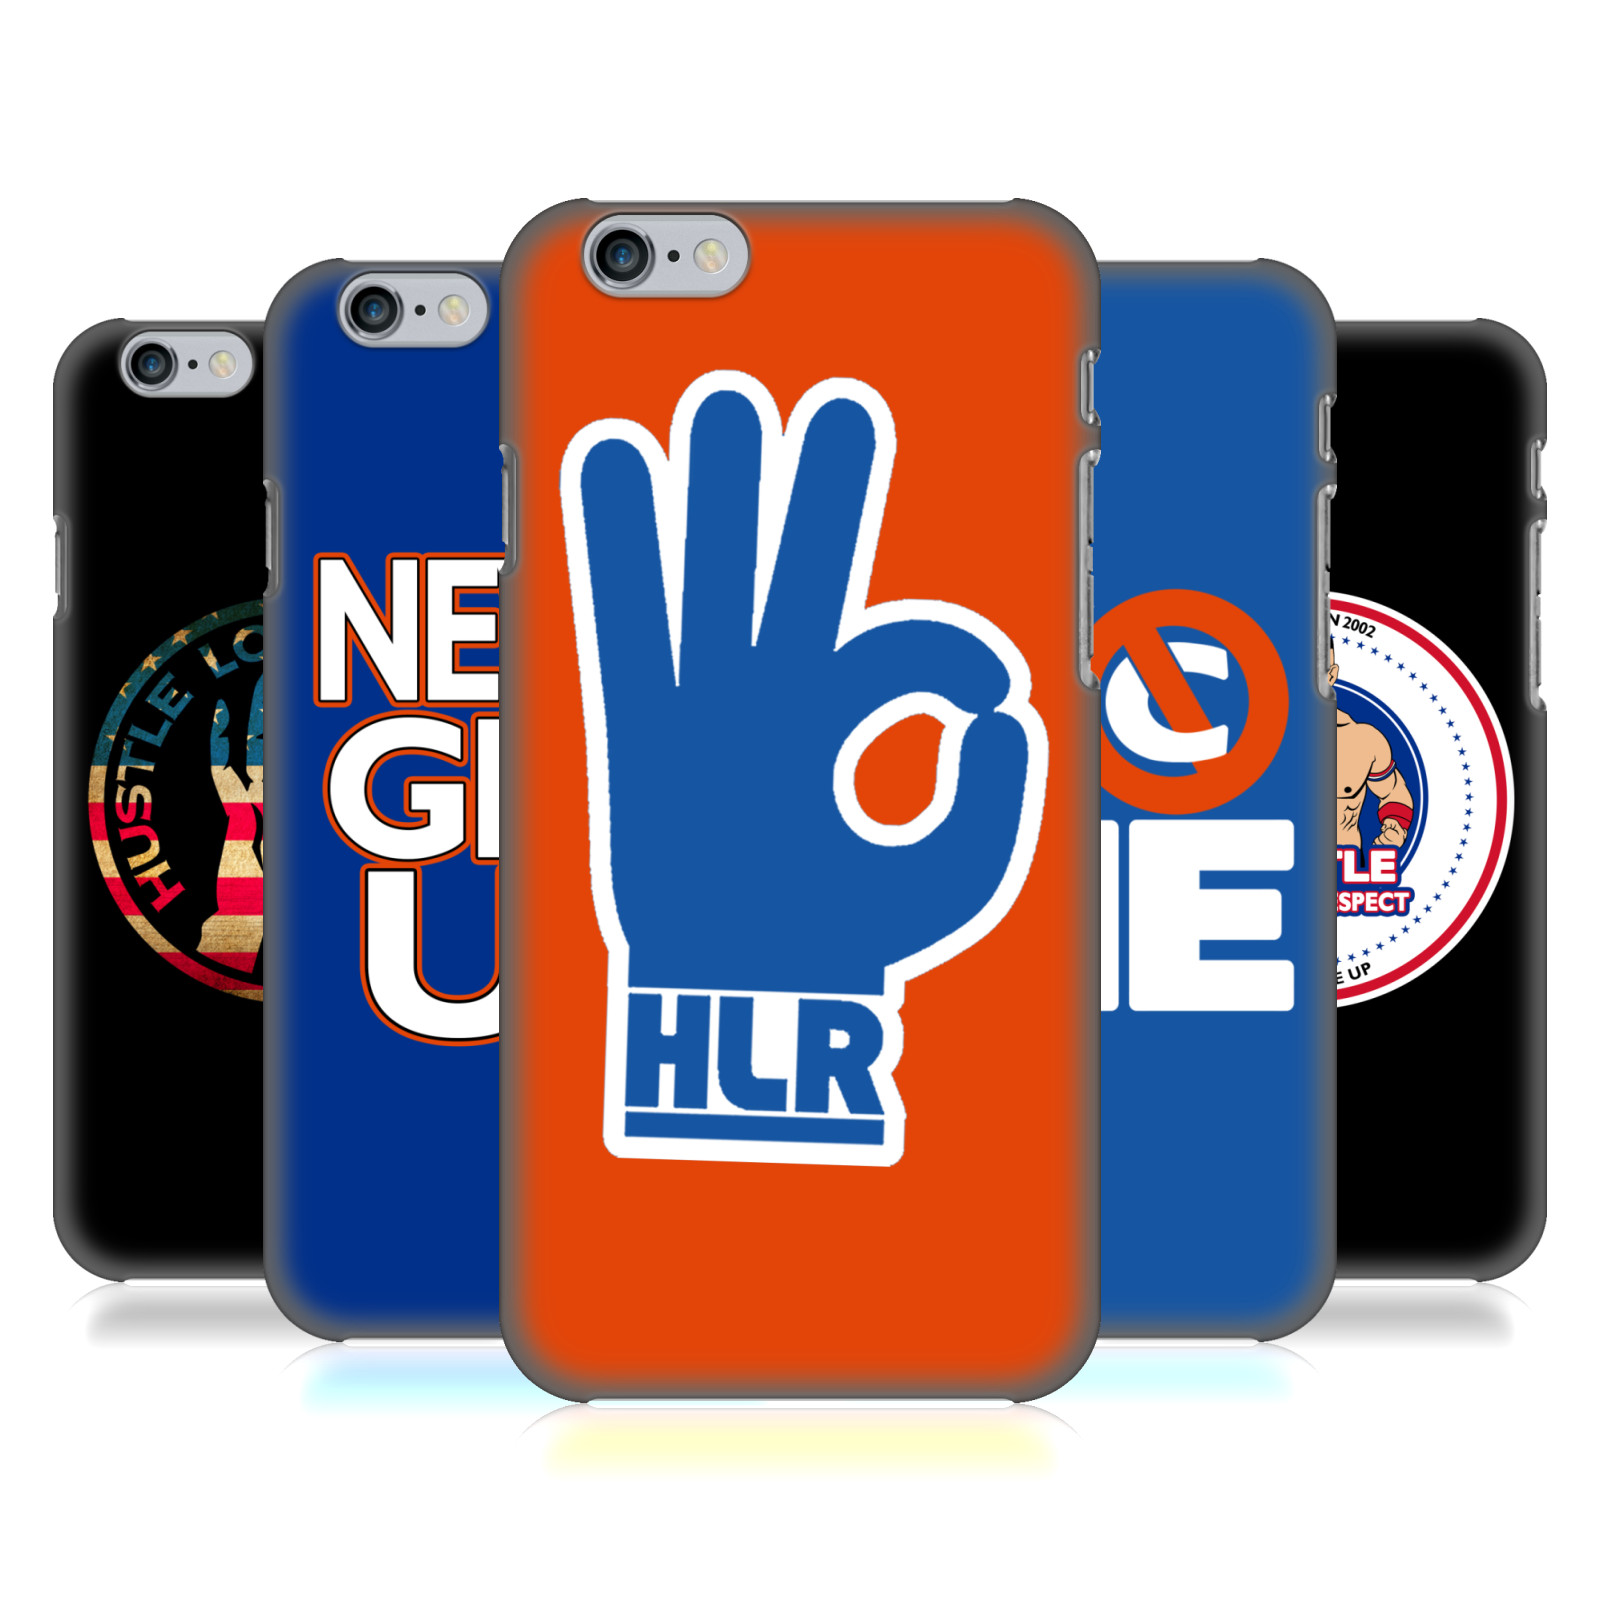 WWE Phone and Tablet cases